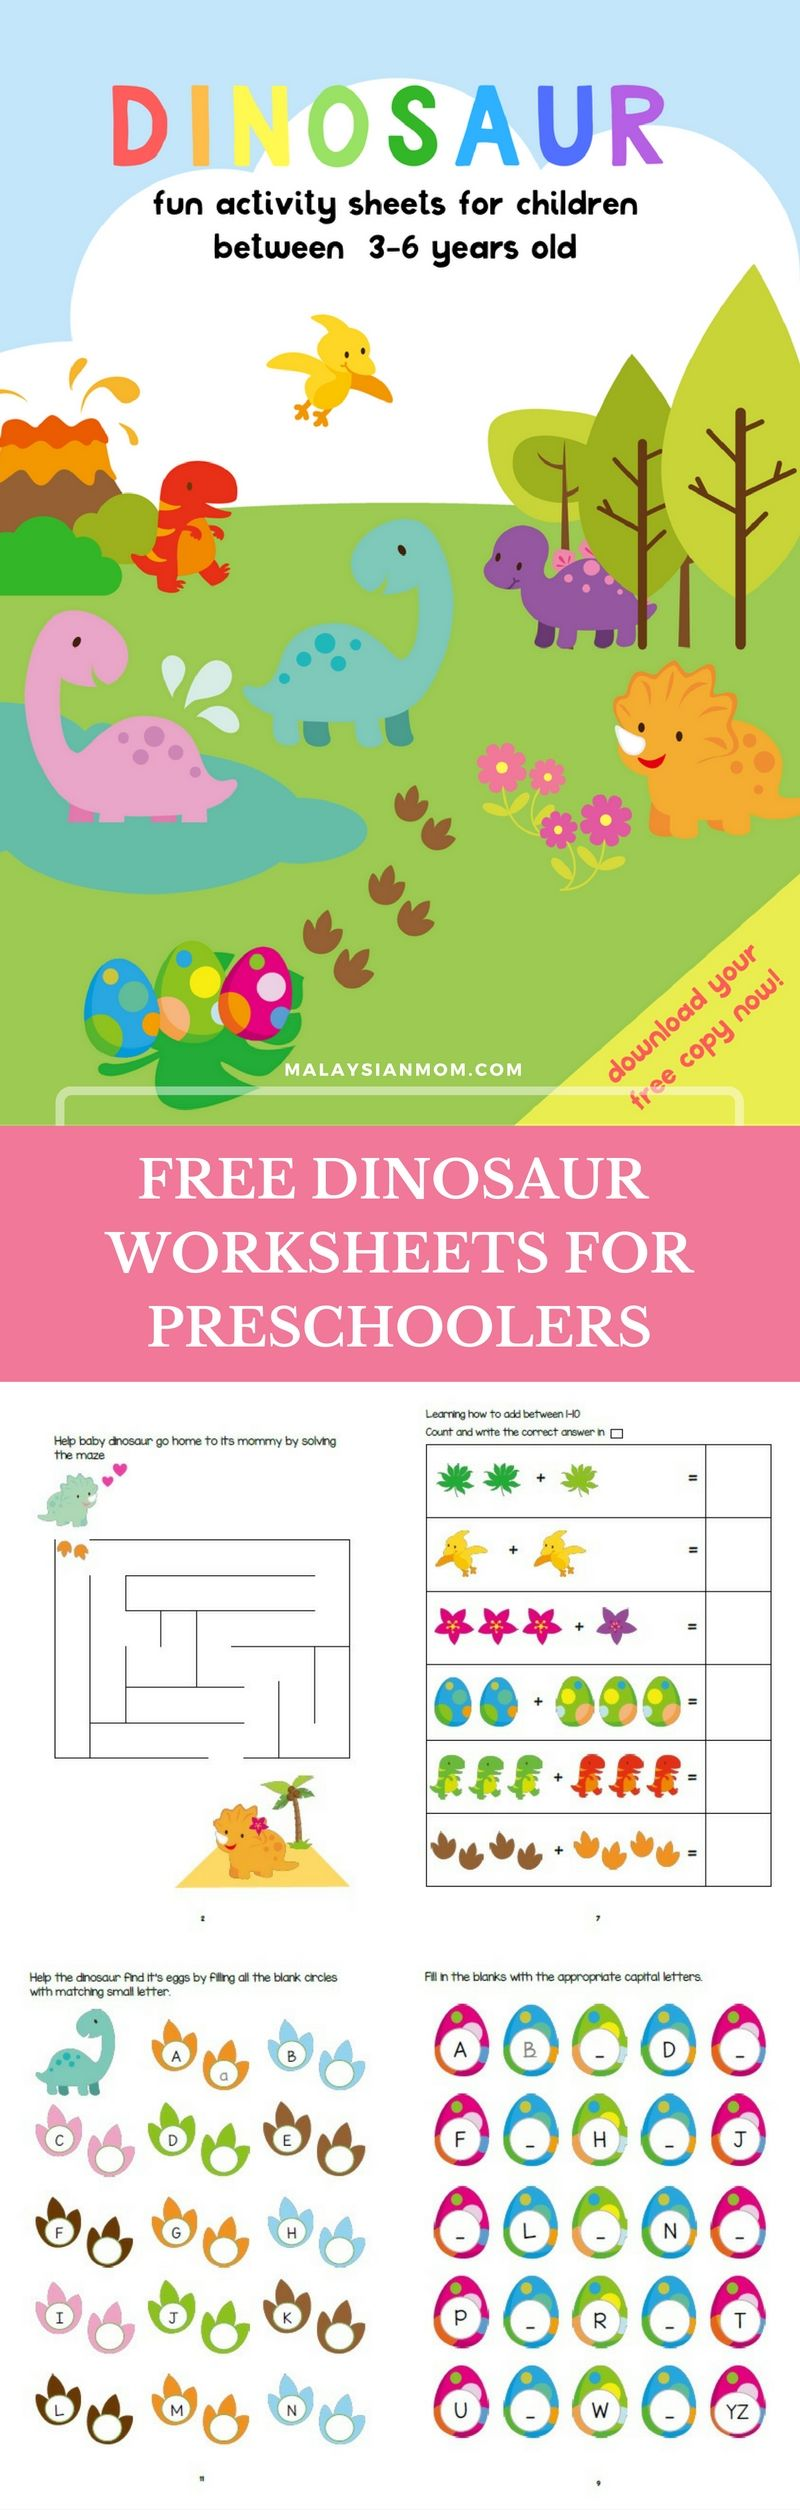 DINOSAUR ACTIVITY SHEETS FOR 3-5 YEARS OLD | Kindergarten party ...